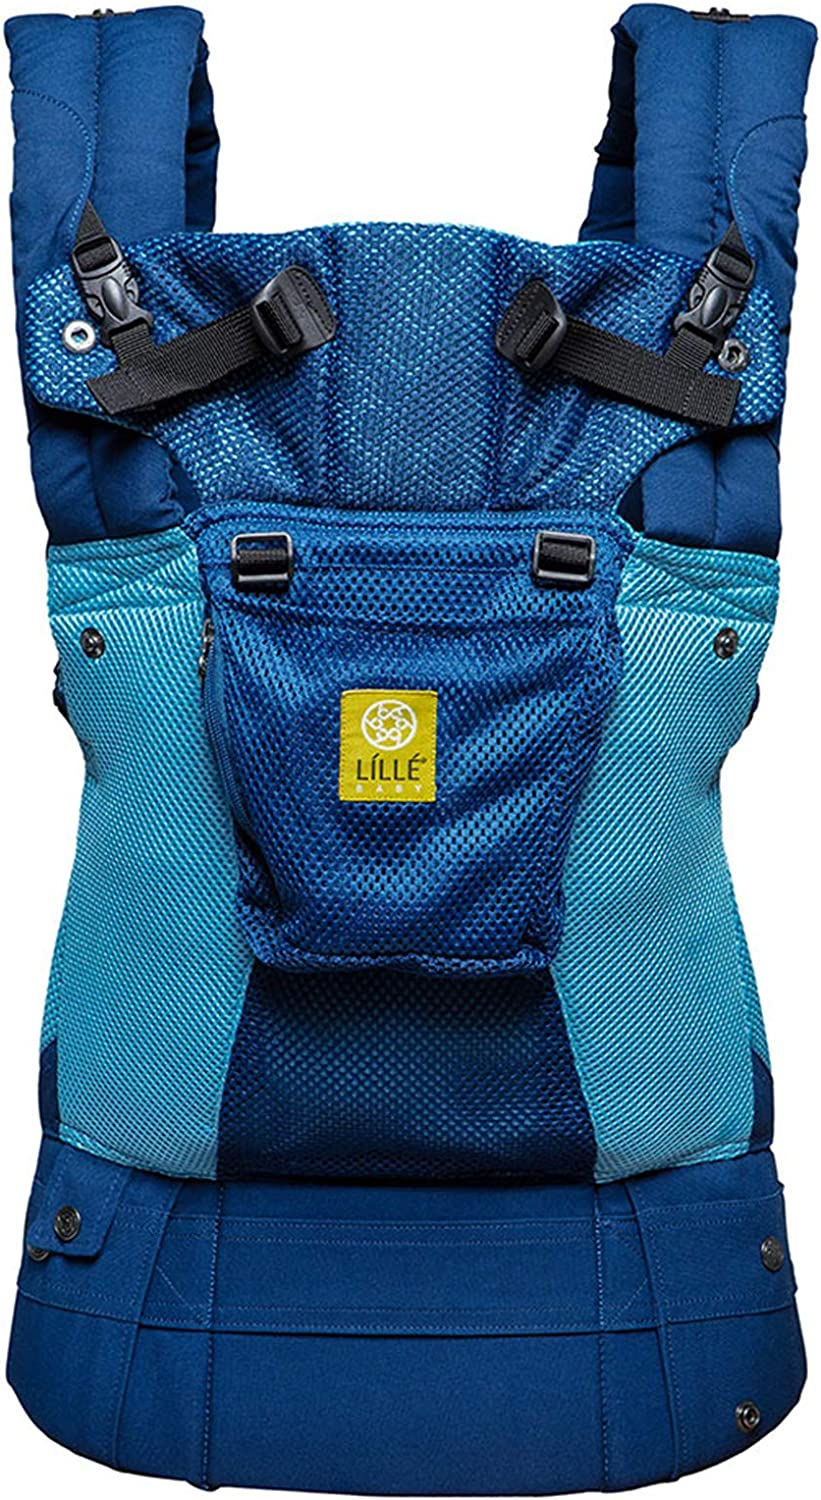 LILLEbaby Complete Airflow 6-in-1 Baby Carrier Champagne